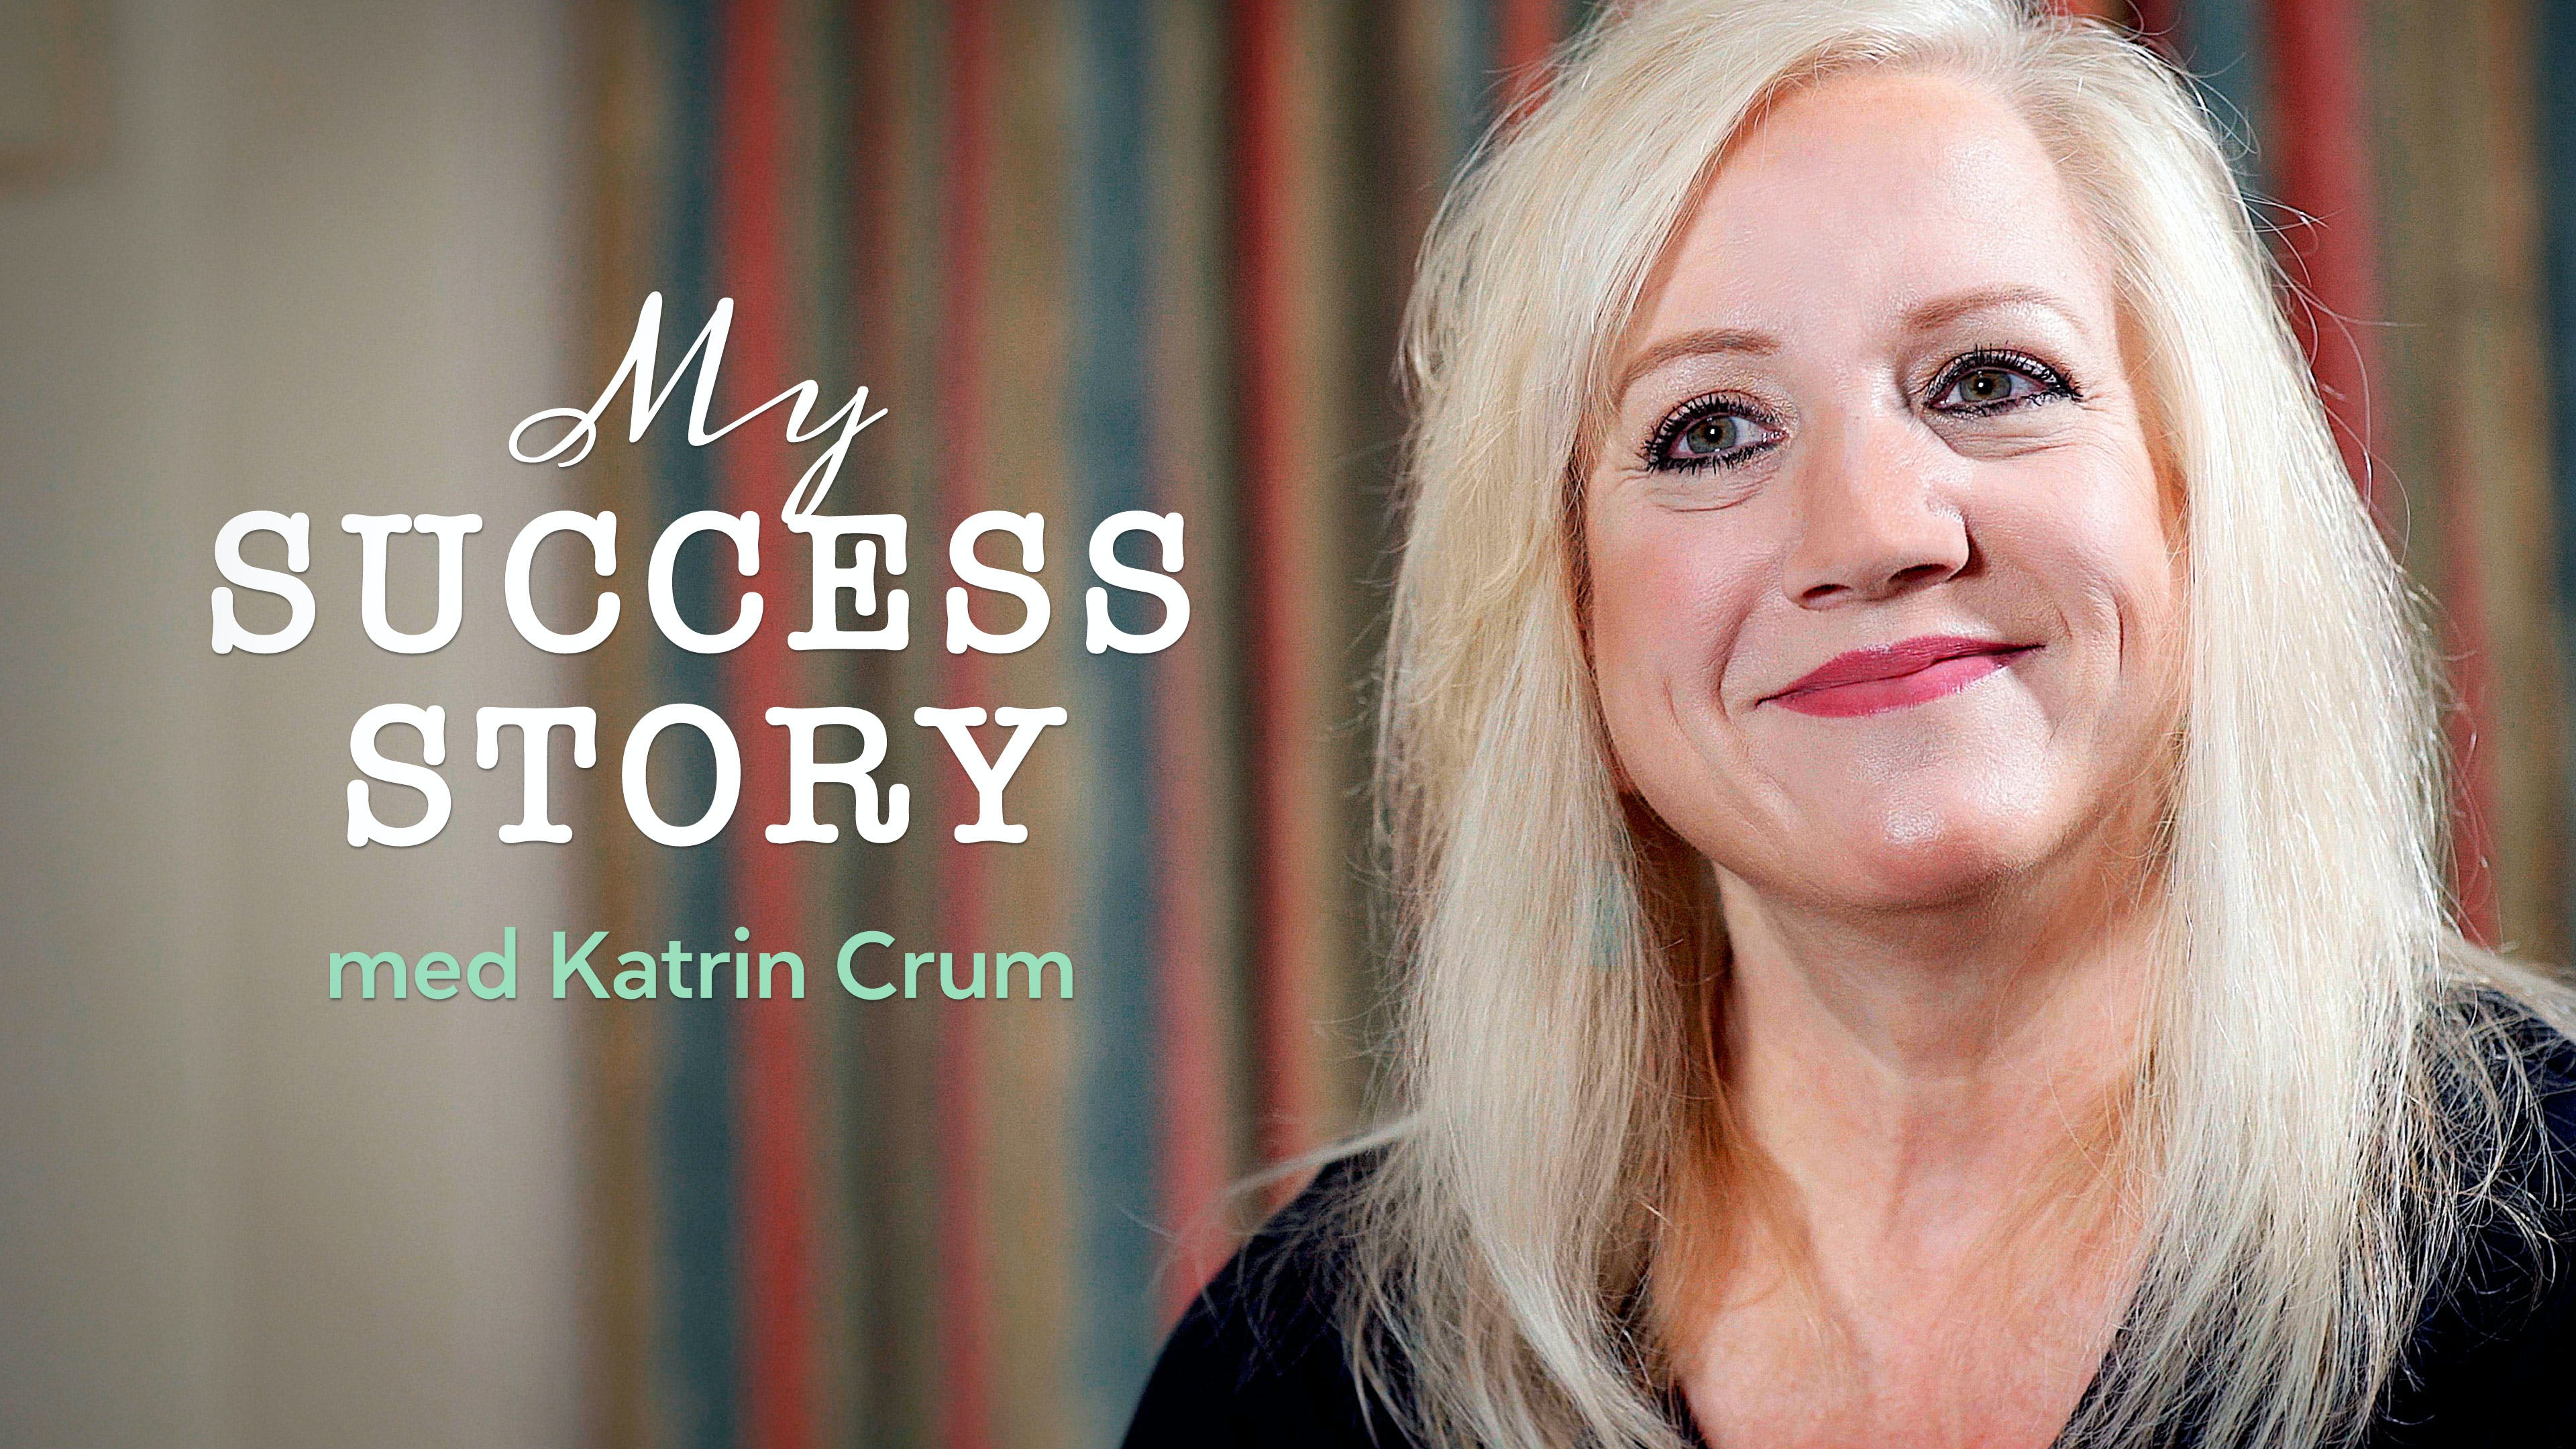 My success story med Katrin Crum